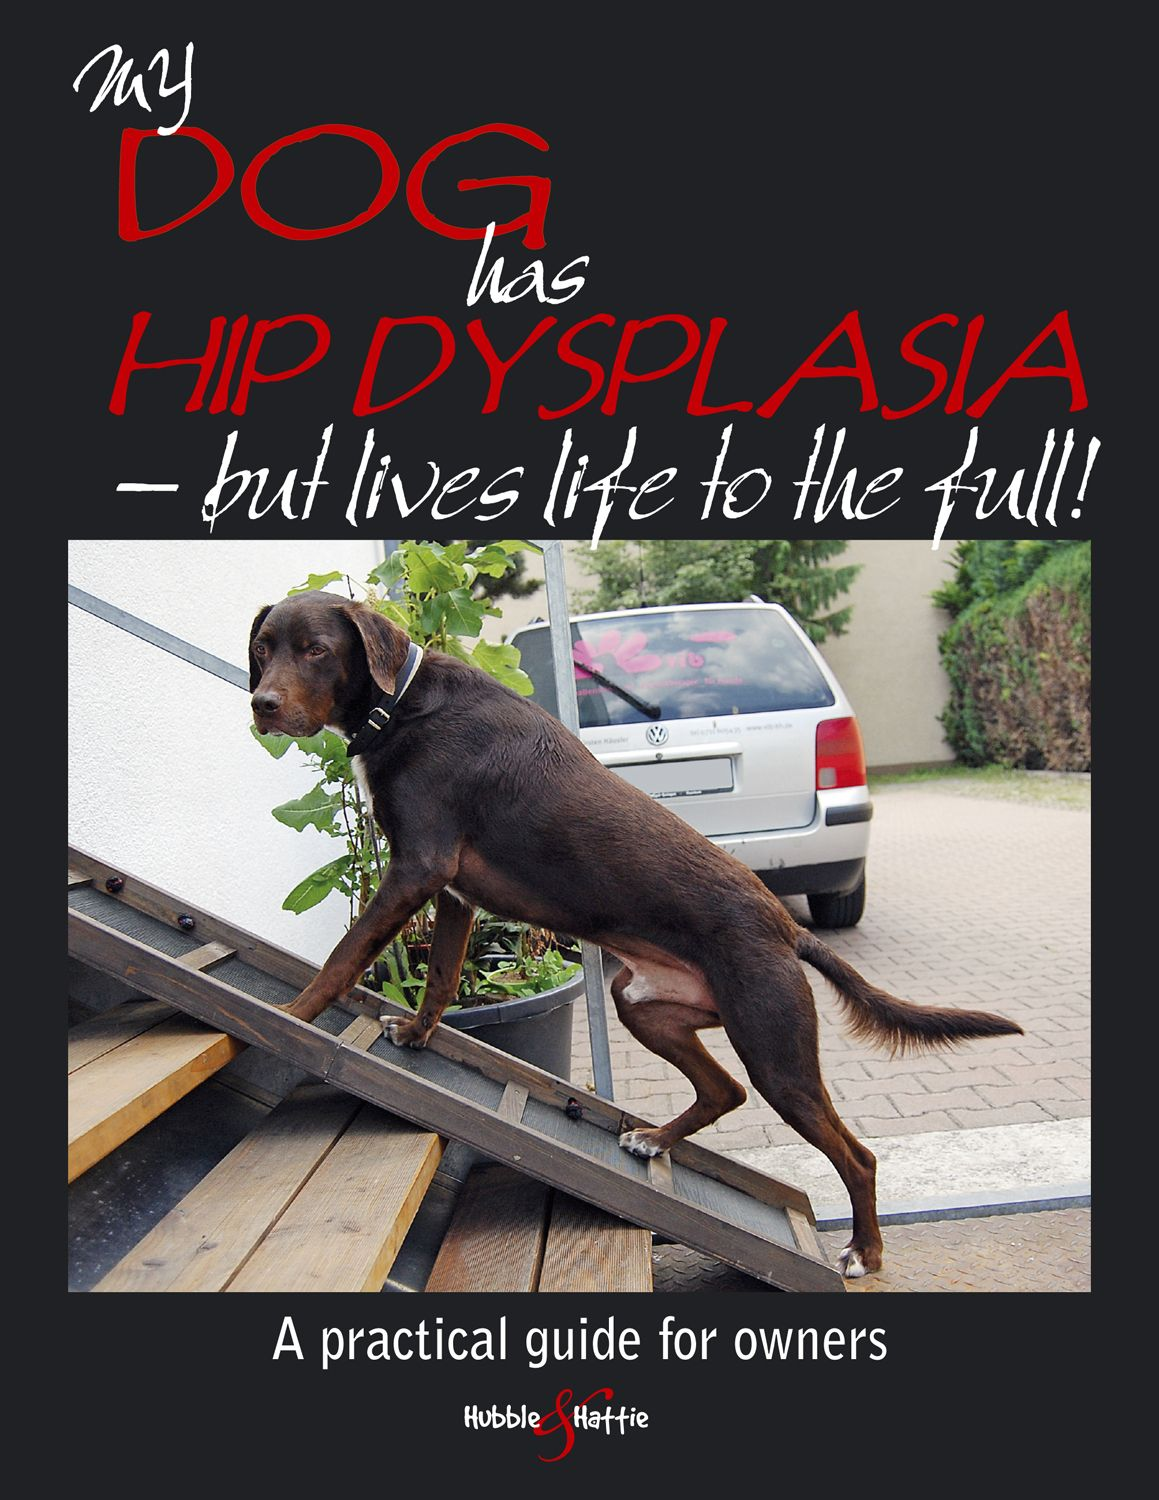 My dog has hip dysplasia but lives life to the full! My